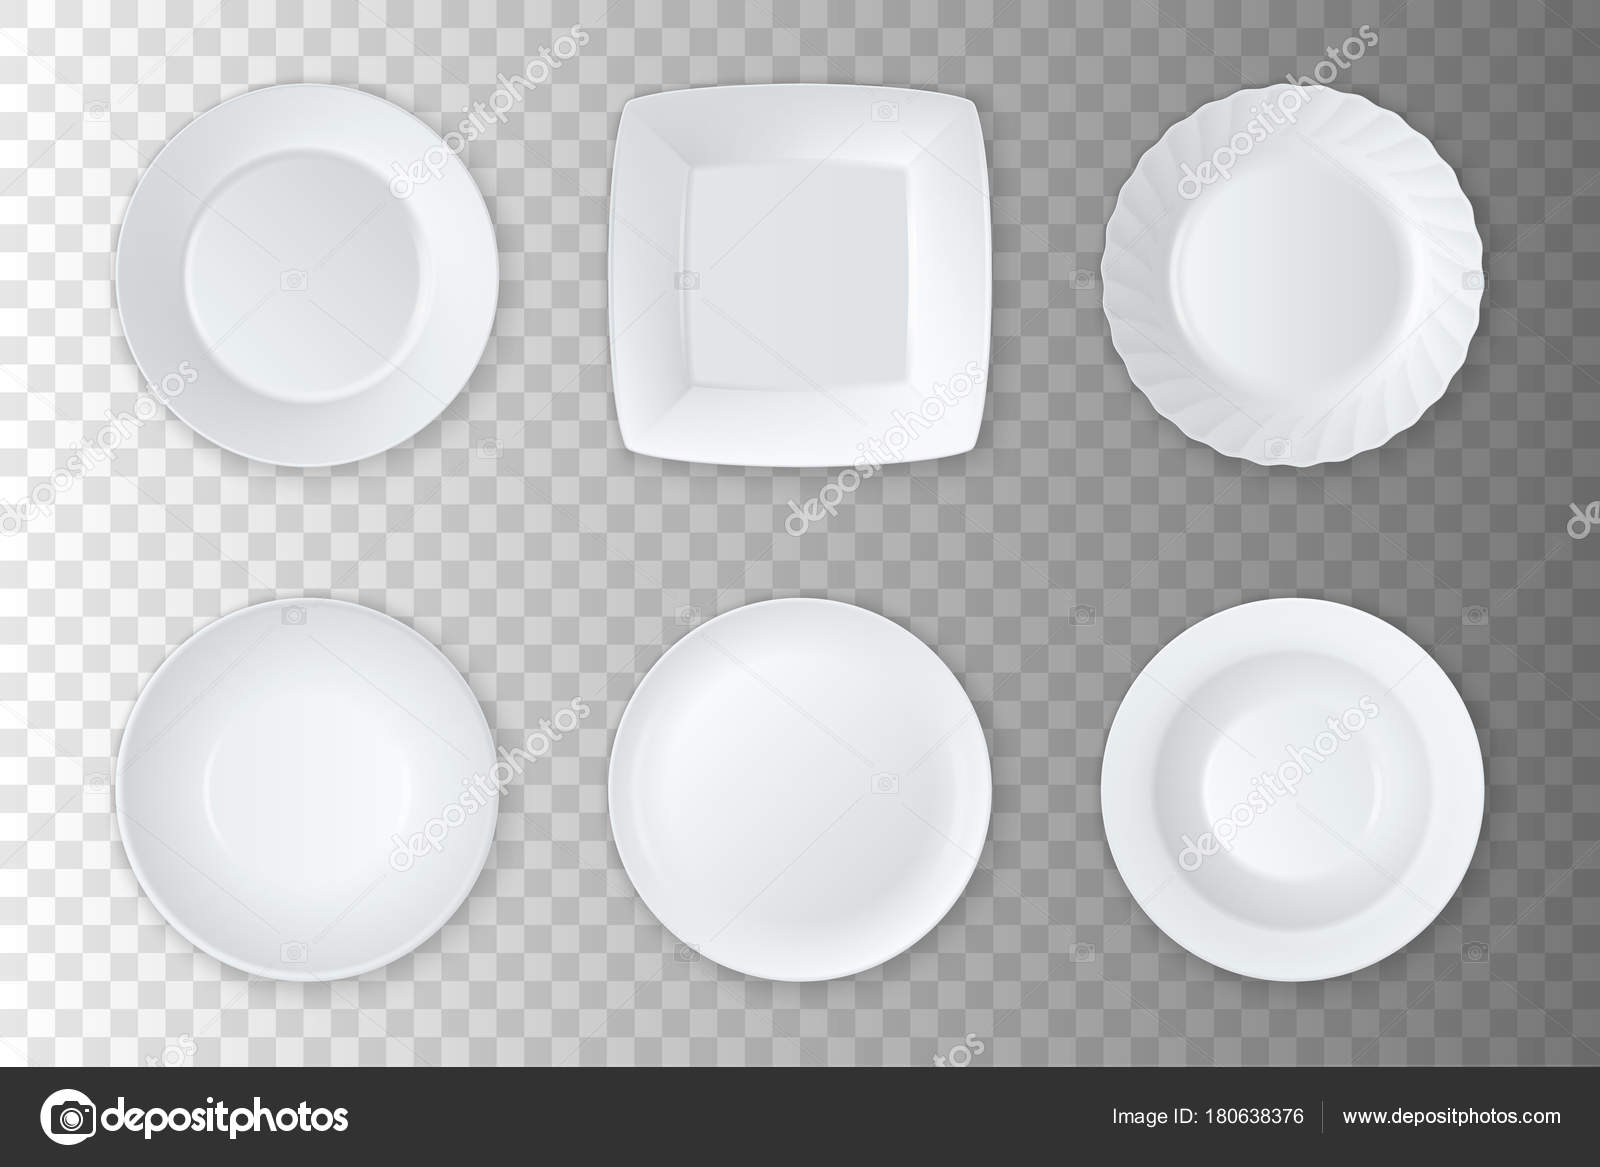 vector white empty food plate, dish and bowl icon set closeup ...